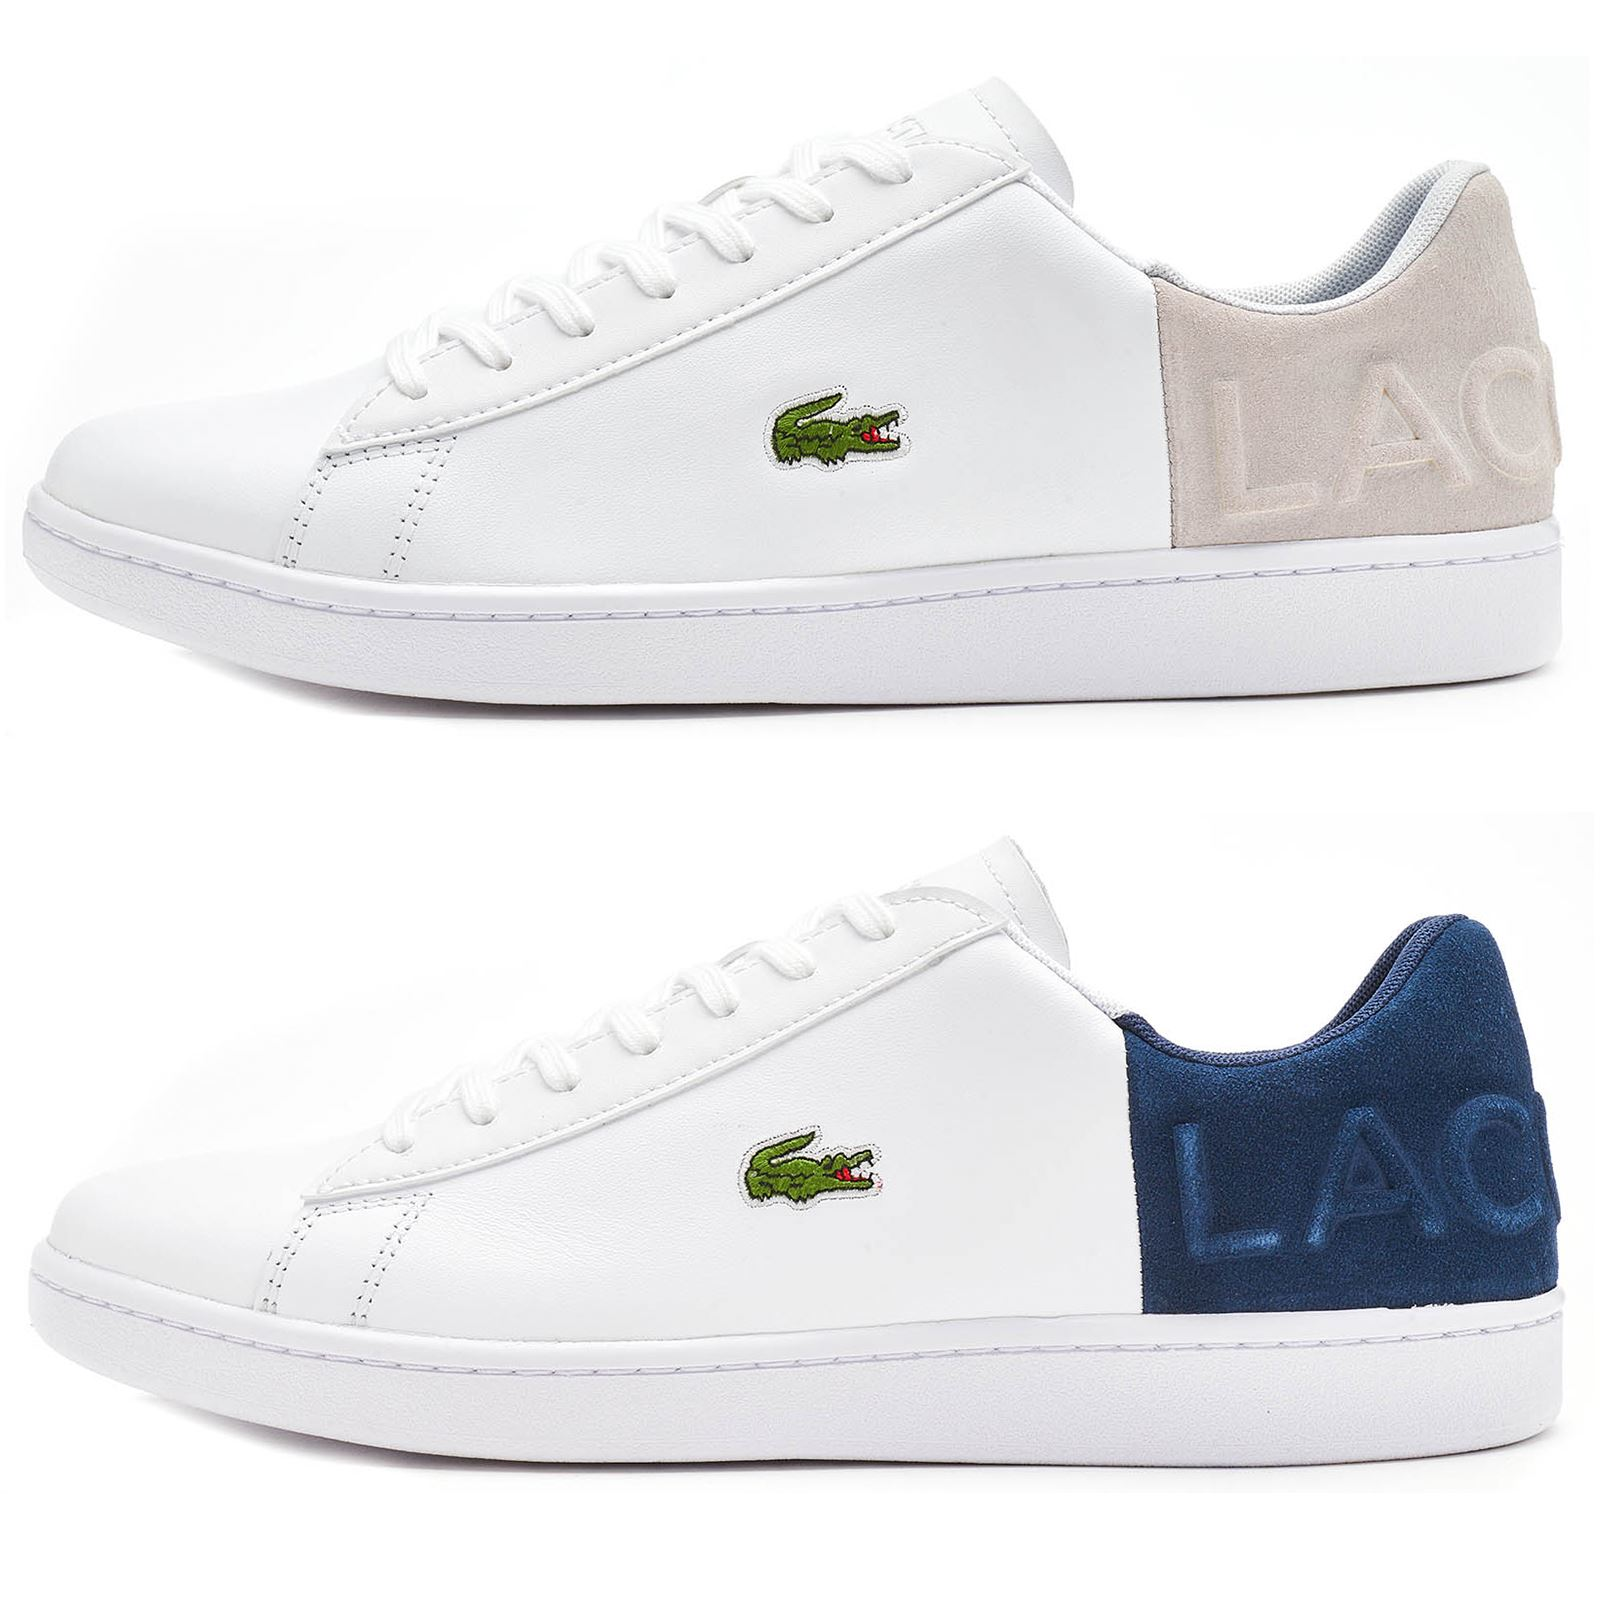 069fa27a09c658 Lacoste Carnaby EVO 318 2 QSP Trainers in White   Grey   Navy Blue Ankle  Labeled